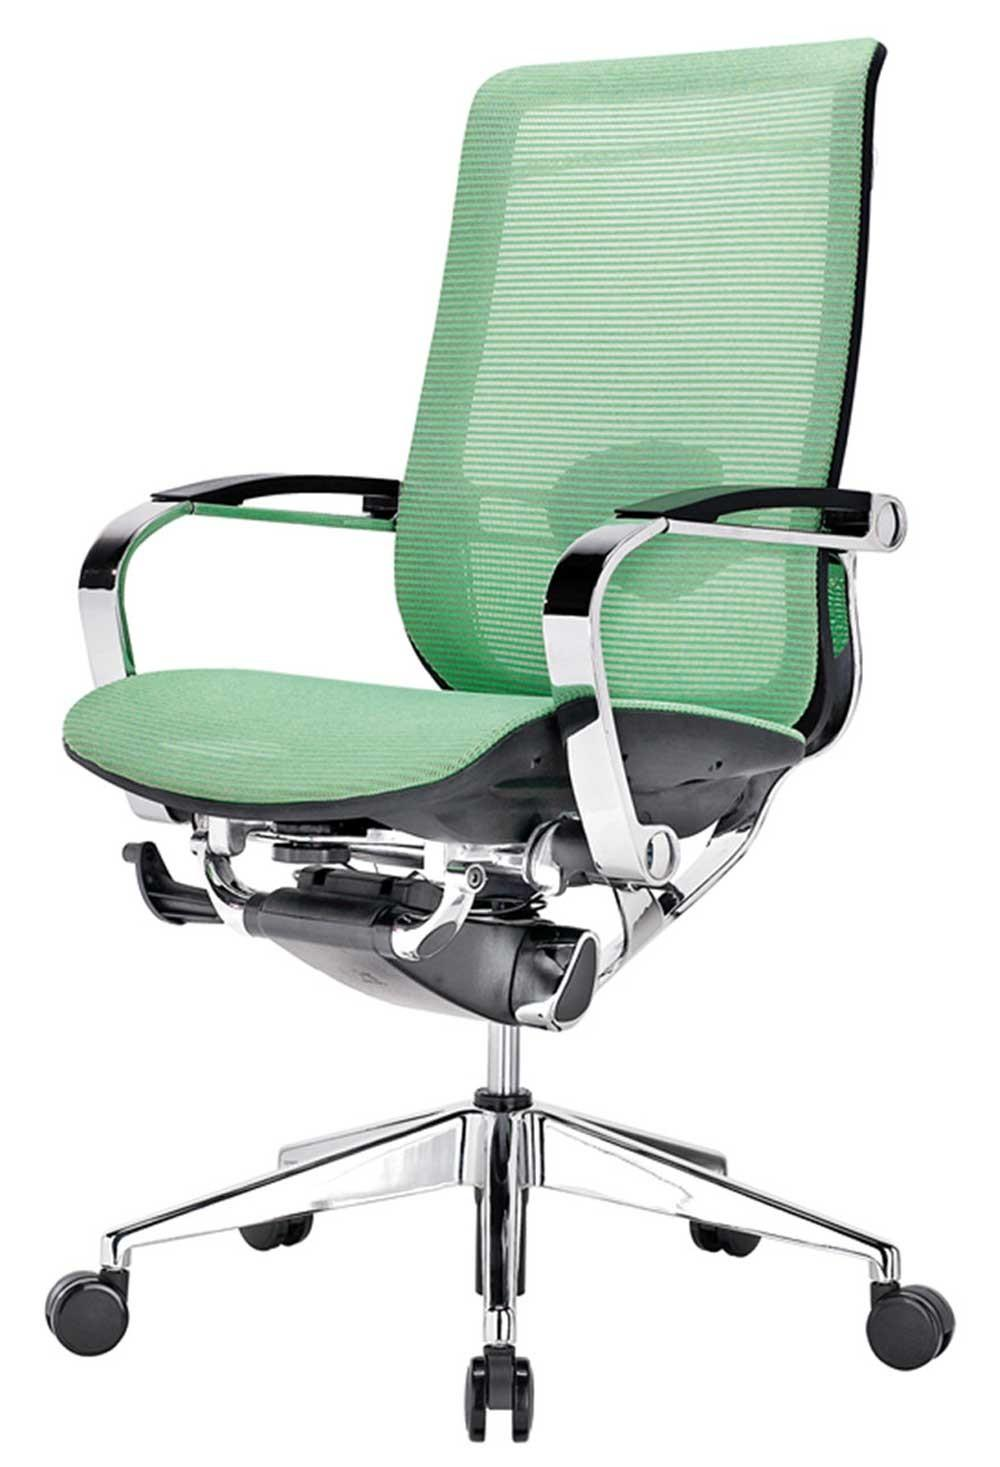 Choosing Affordable Business Office Chairs